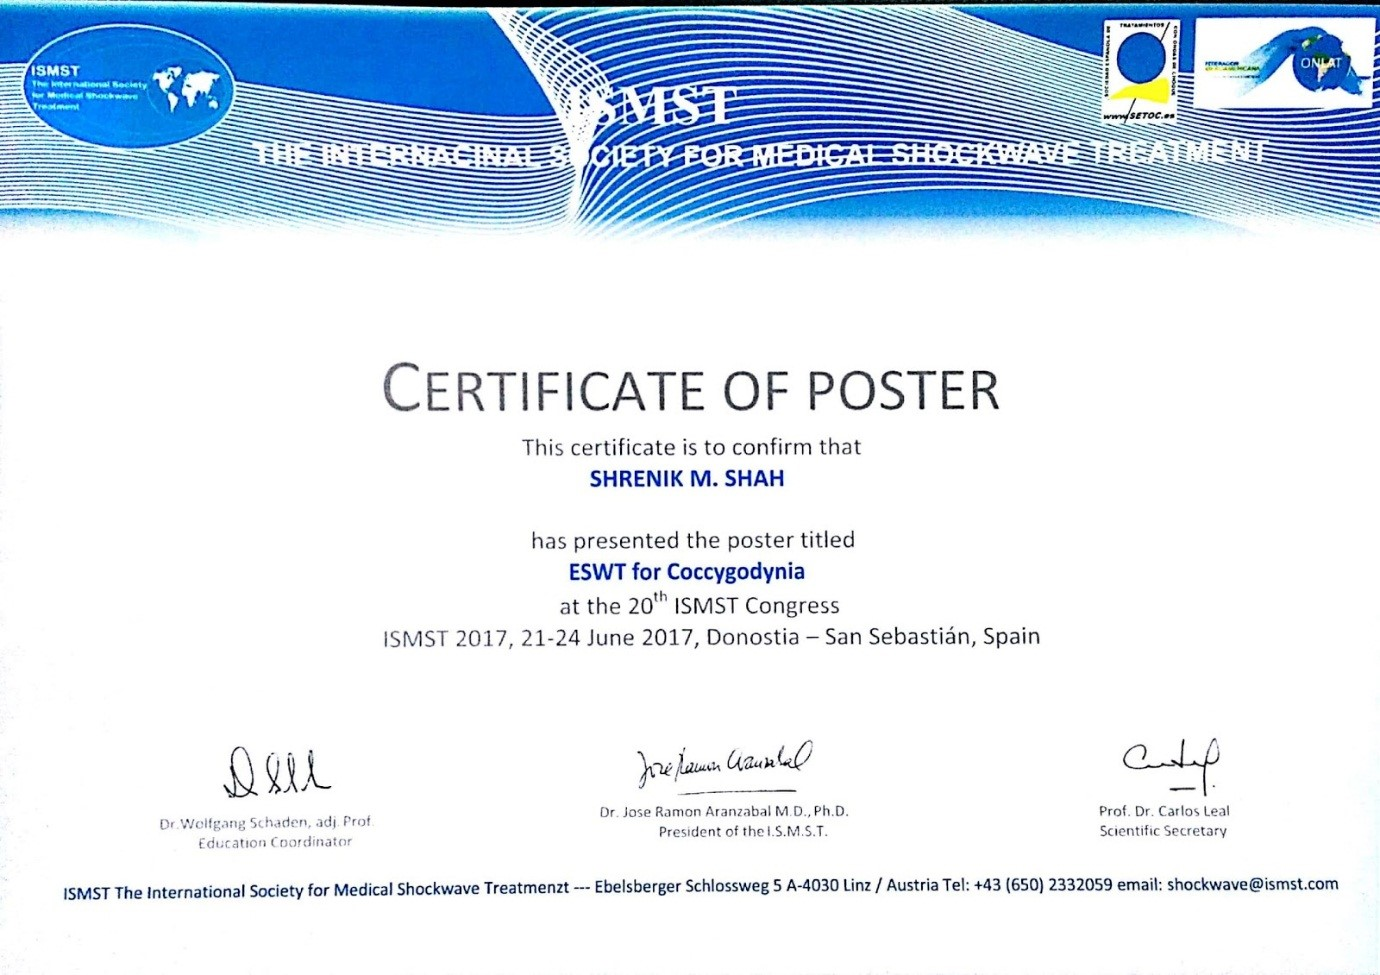 PRESENTED_TWO_POSTERS_IN_ISMST_JUNE_2017_IN_SPAIN-2